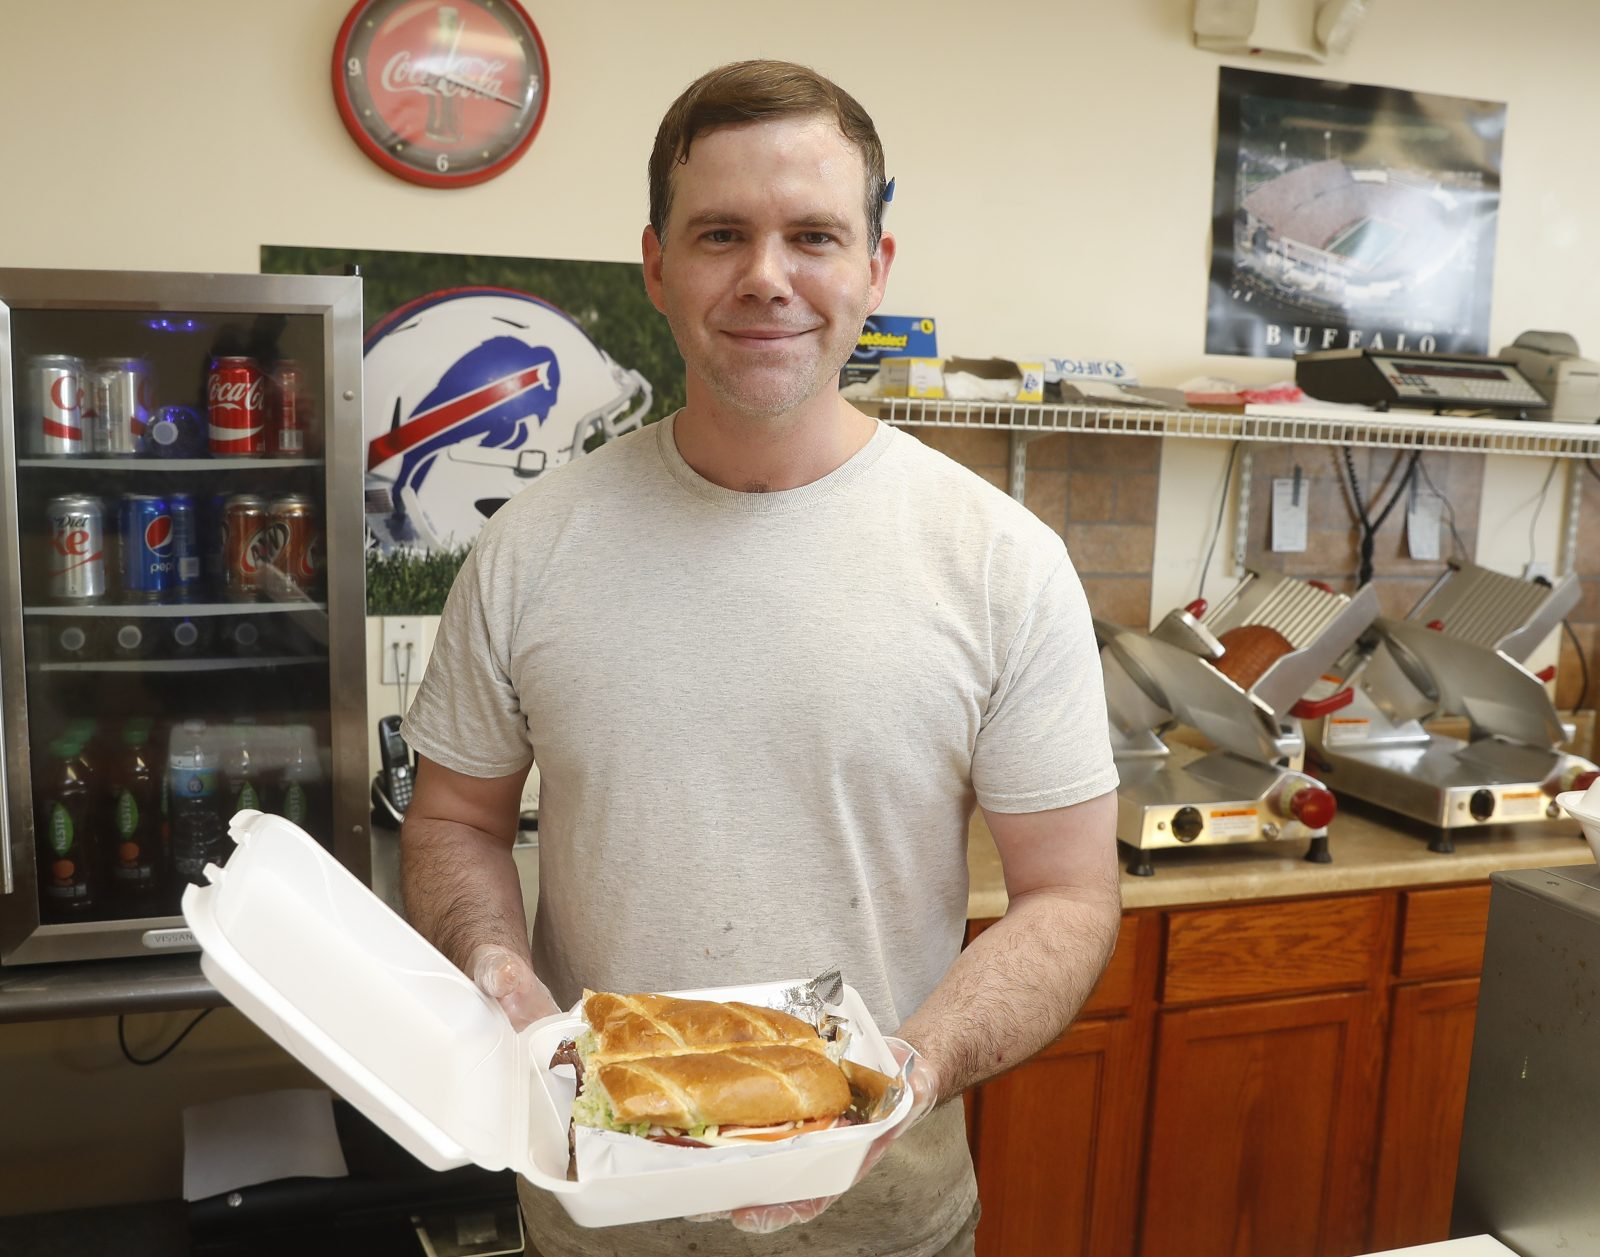 Tailgate Deli's ham and turkey sub with Swiss comes piled high with cold cuts and lots of veggies. (Lizz Schumer/Special to the News).